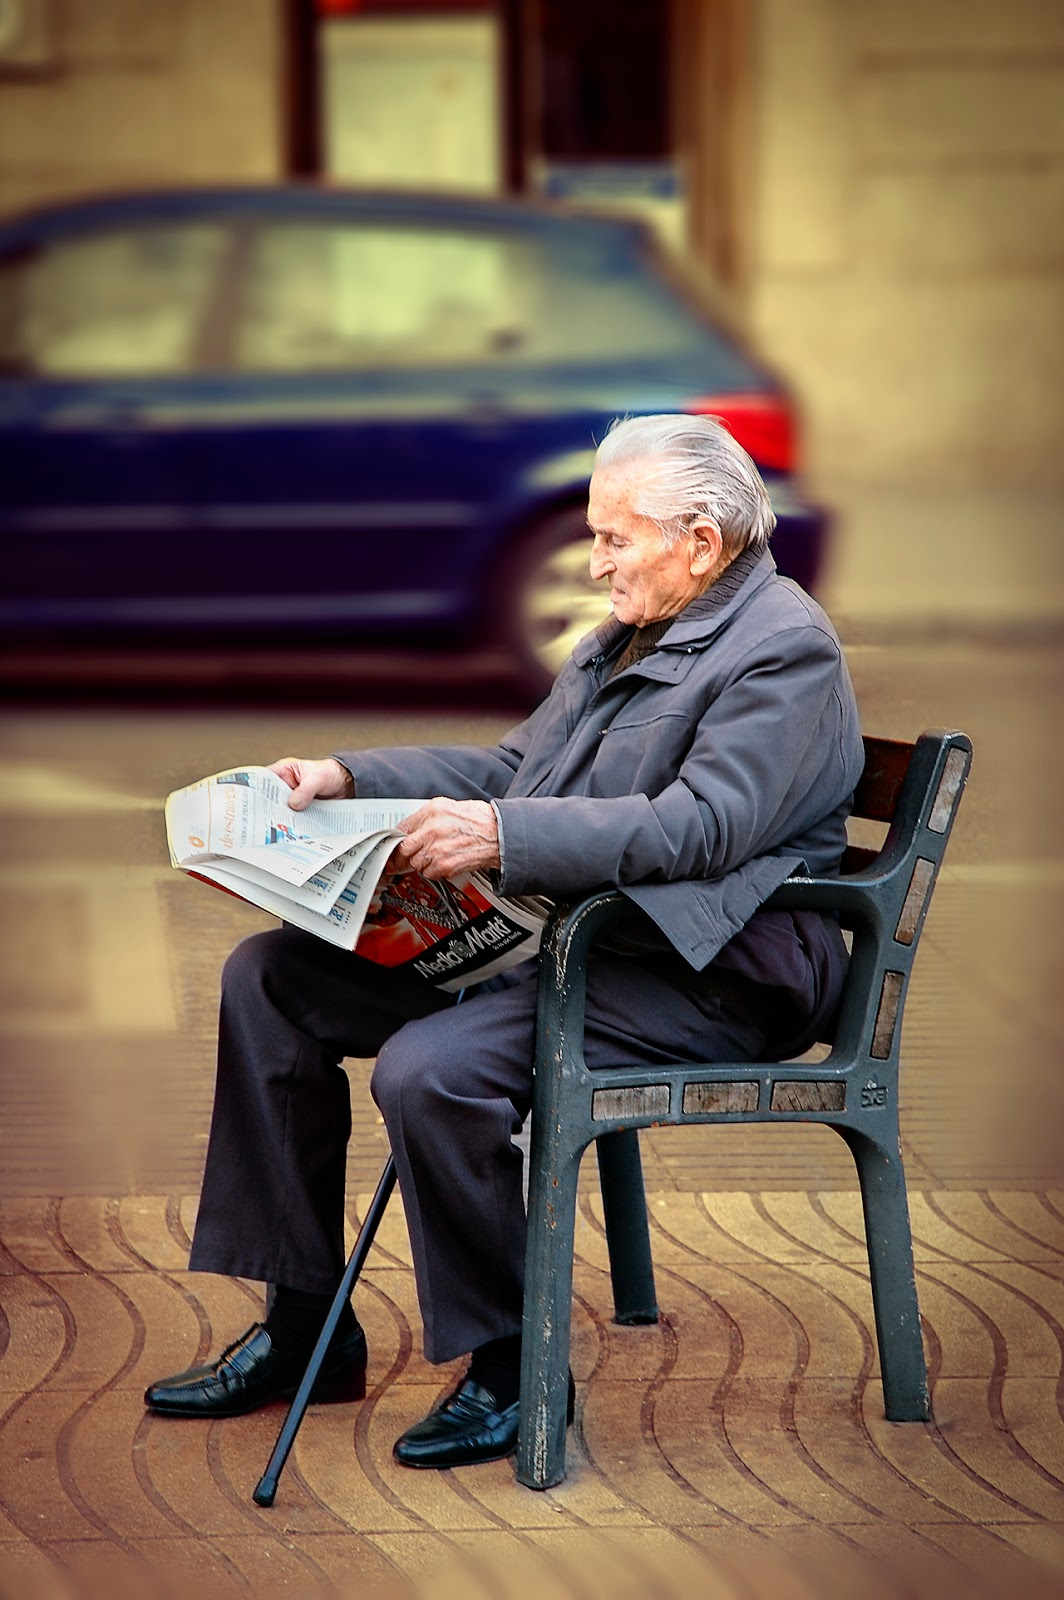 Elderly people in Barcelona